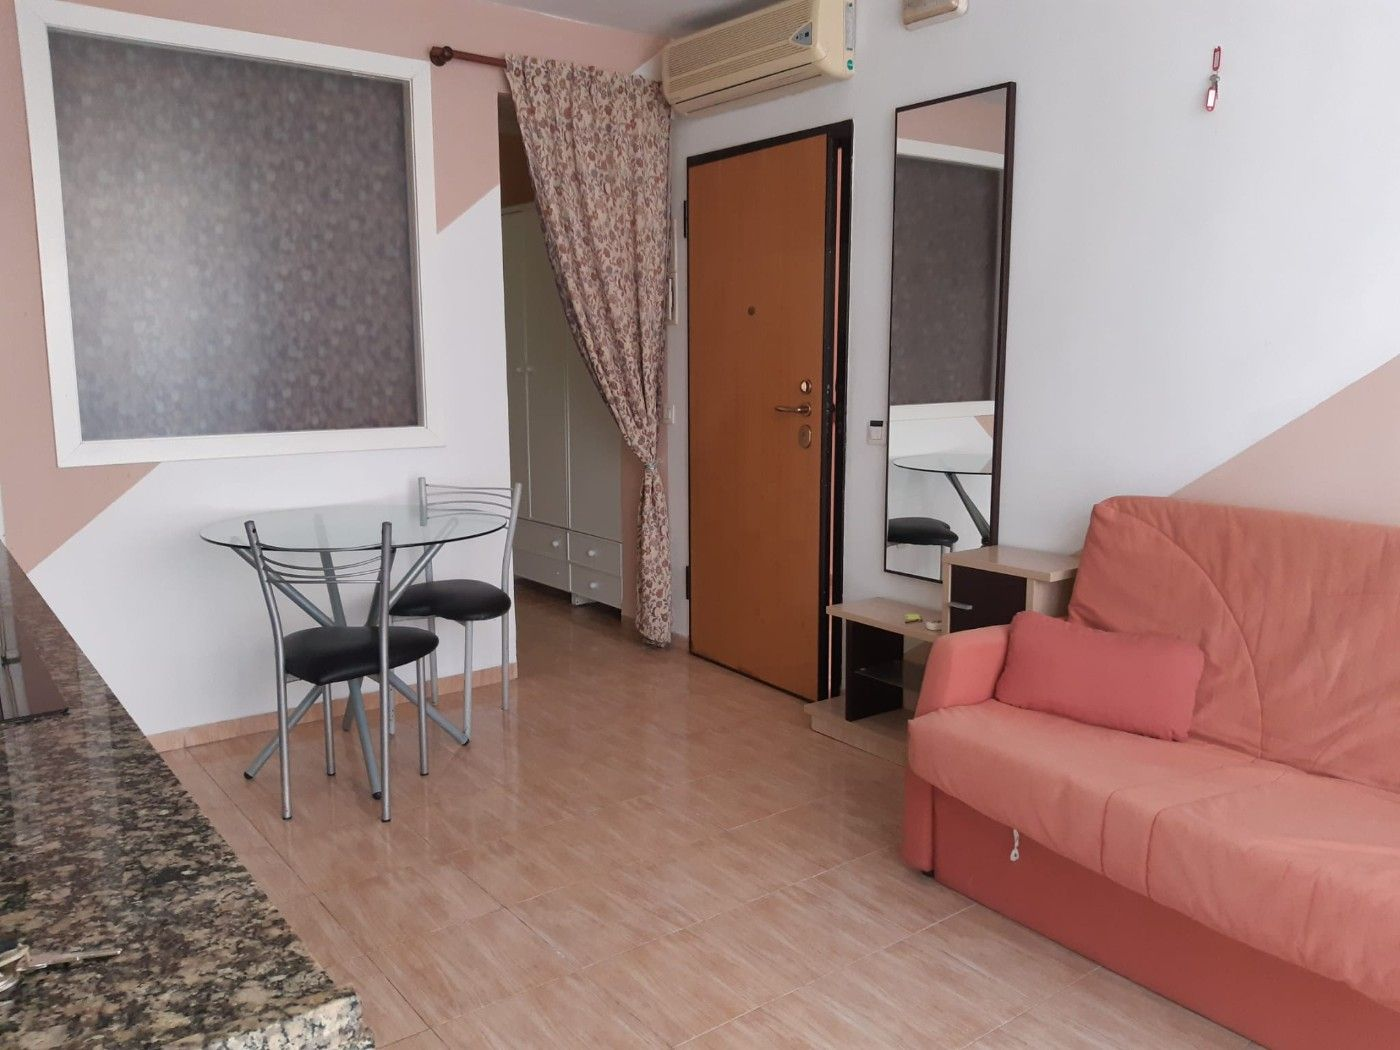 Rent Studio in Madrigal